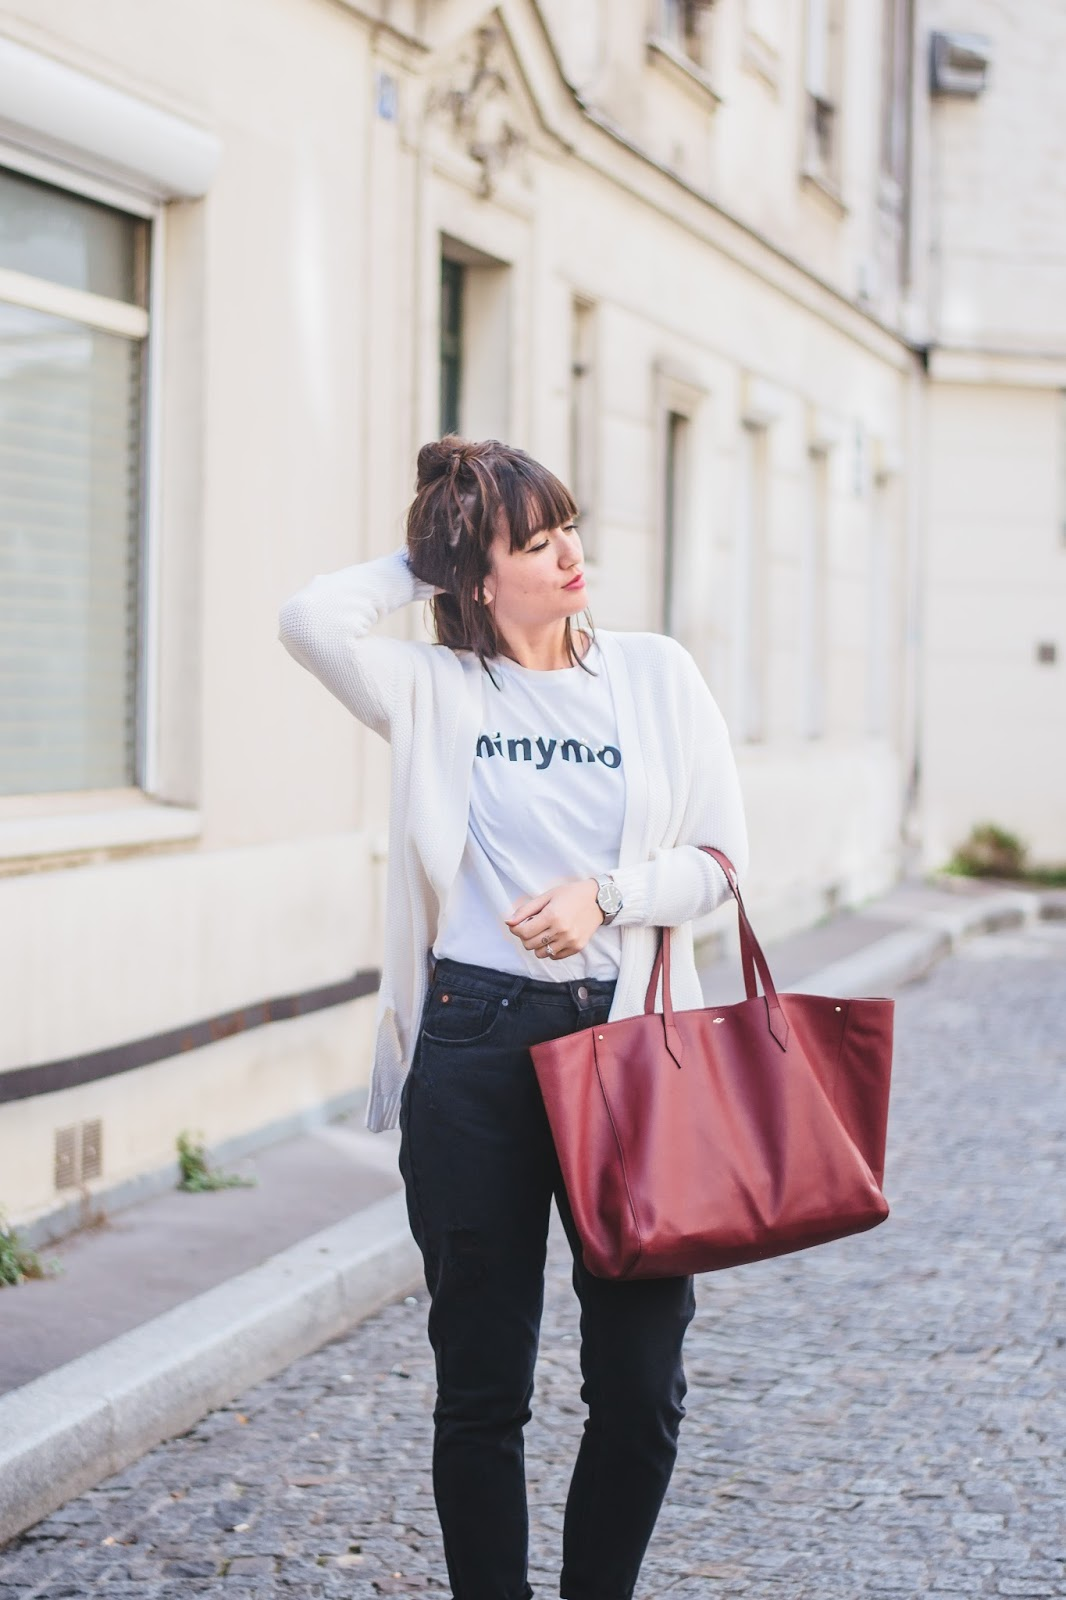 parisianfashionblogger-look-style-mode-fashion-meetmeinparee-chic